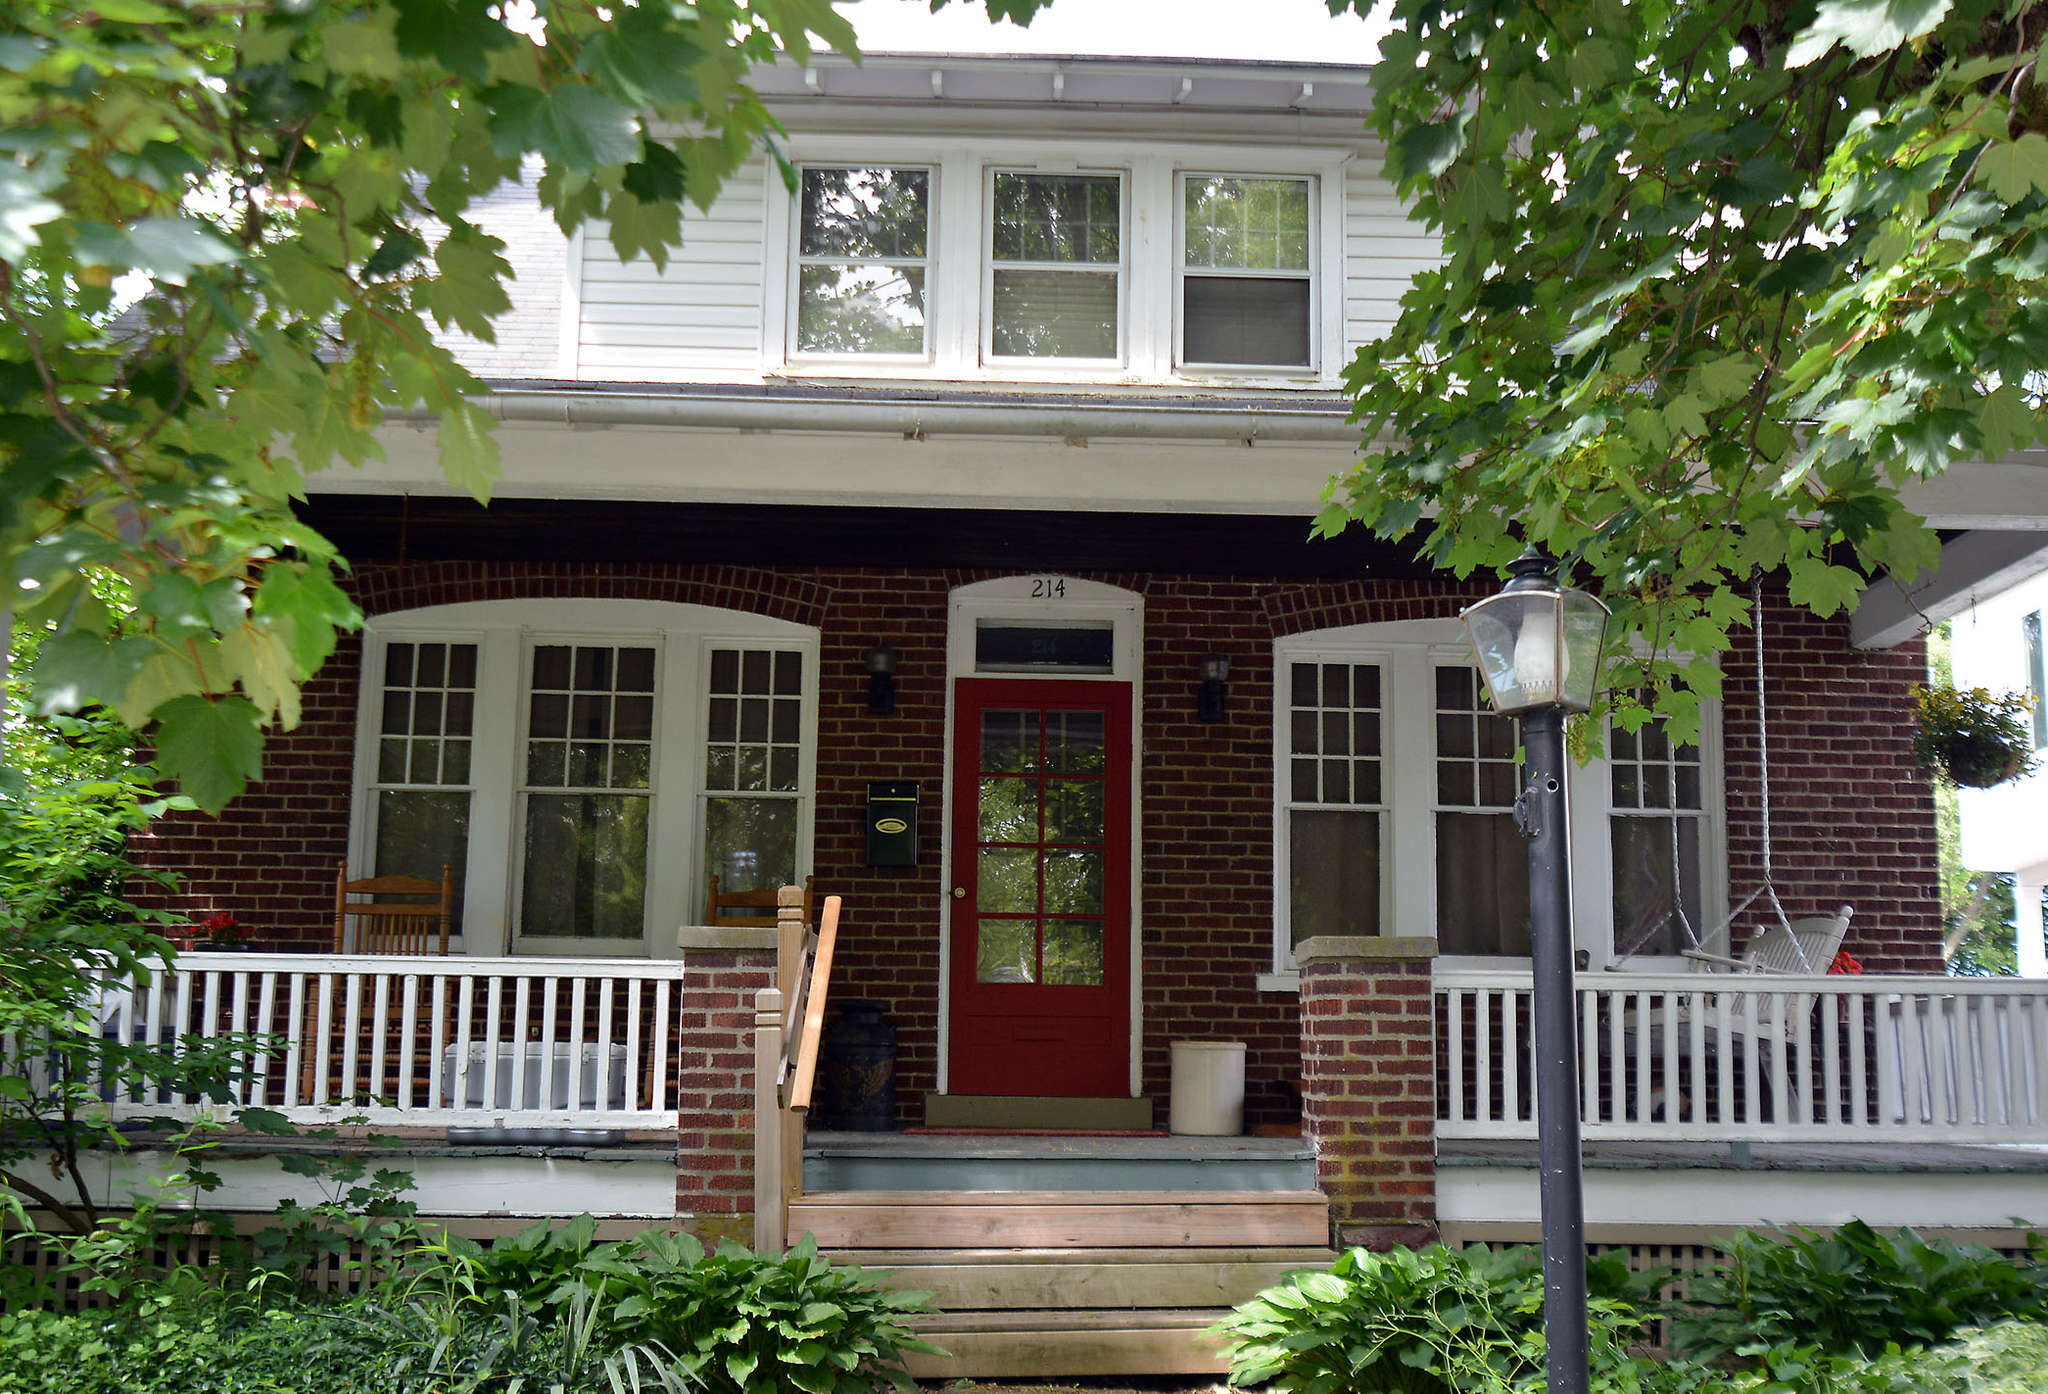 214 Franklin Ave. is for sale for $229,000. Townhouses, too, are coming to Souderton.